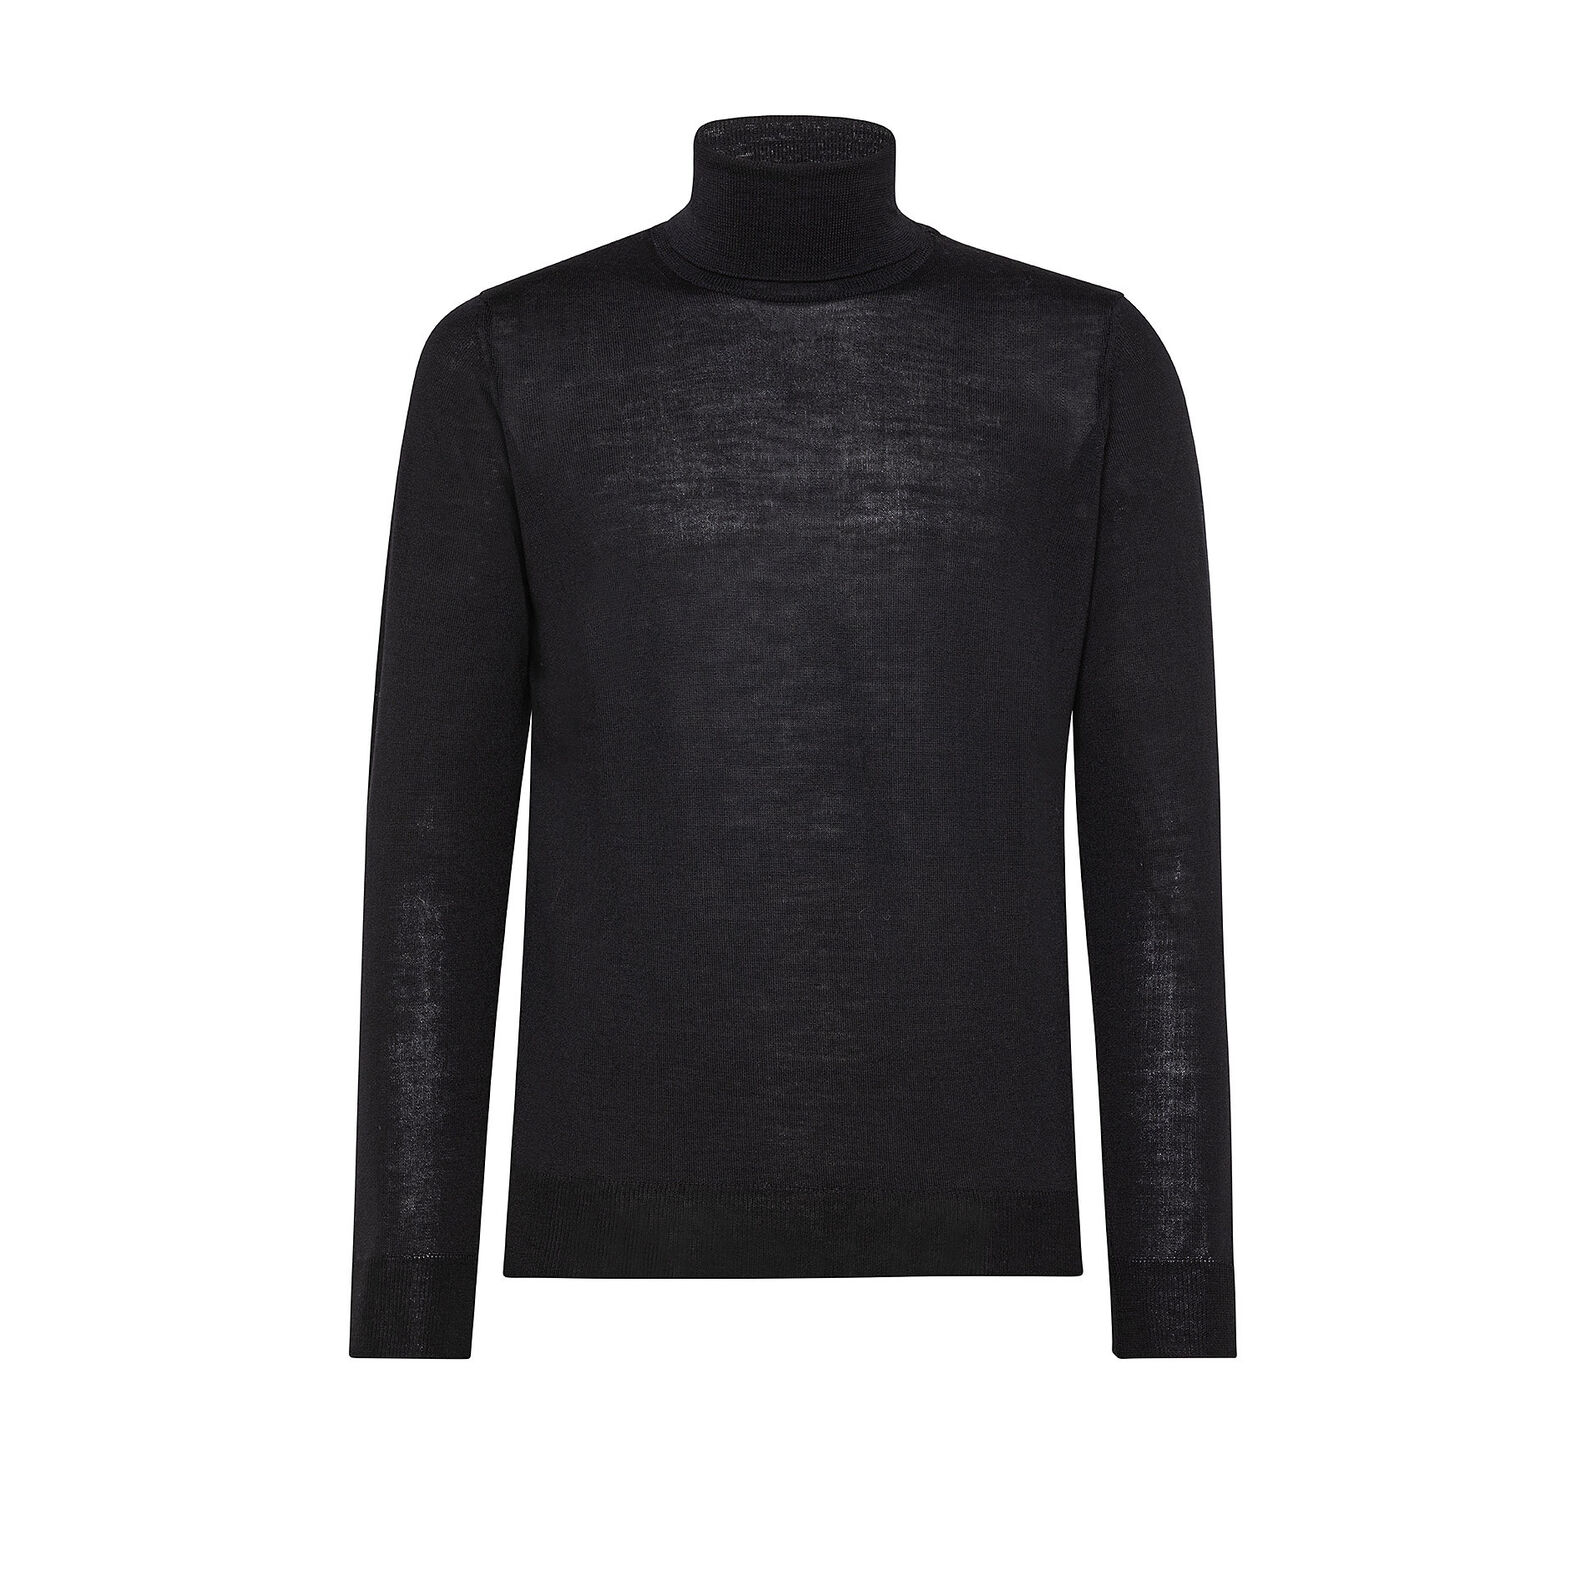 Extra-fine merino wool pullover with high neck